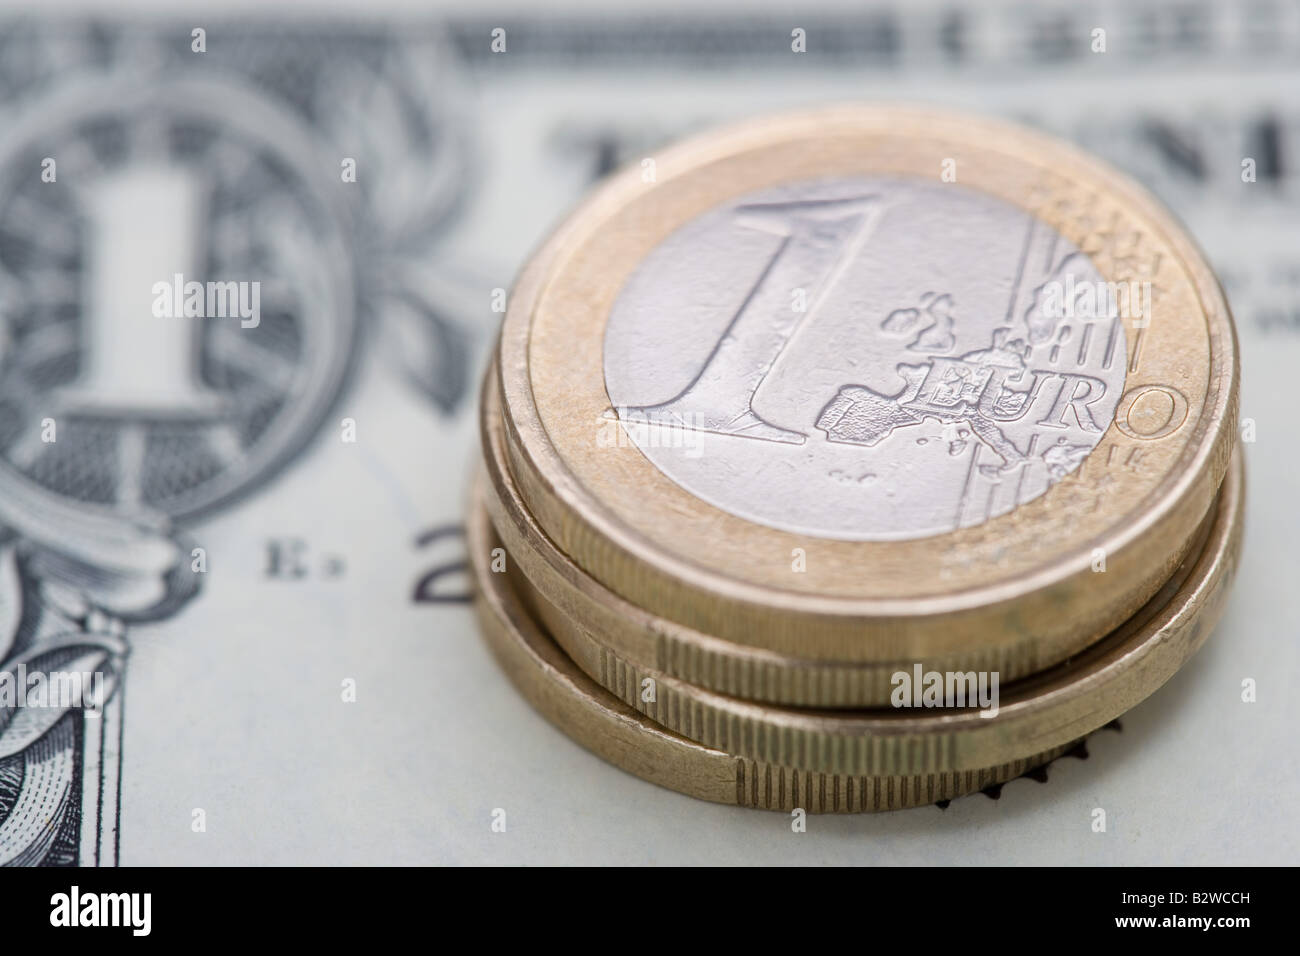 Euro coins on dollar bill - Stock Image